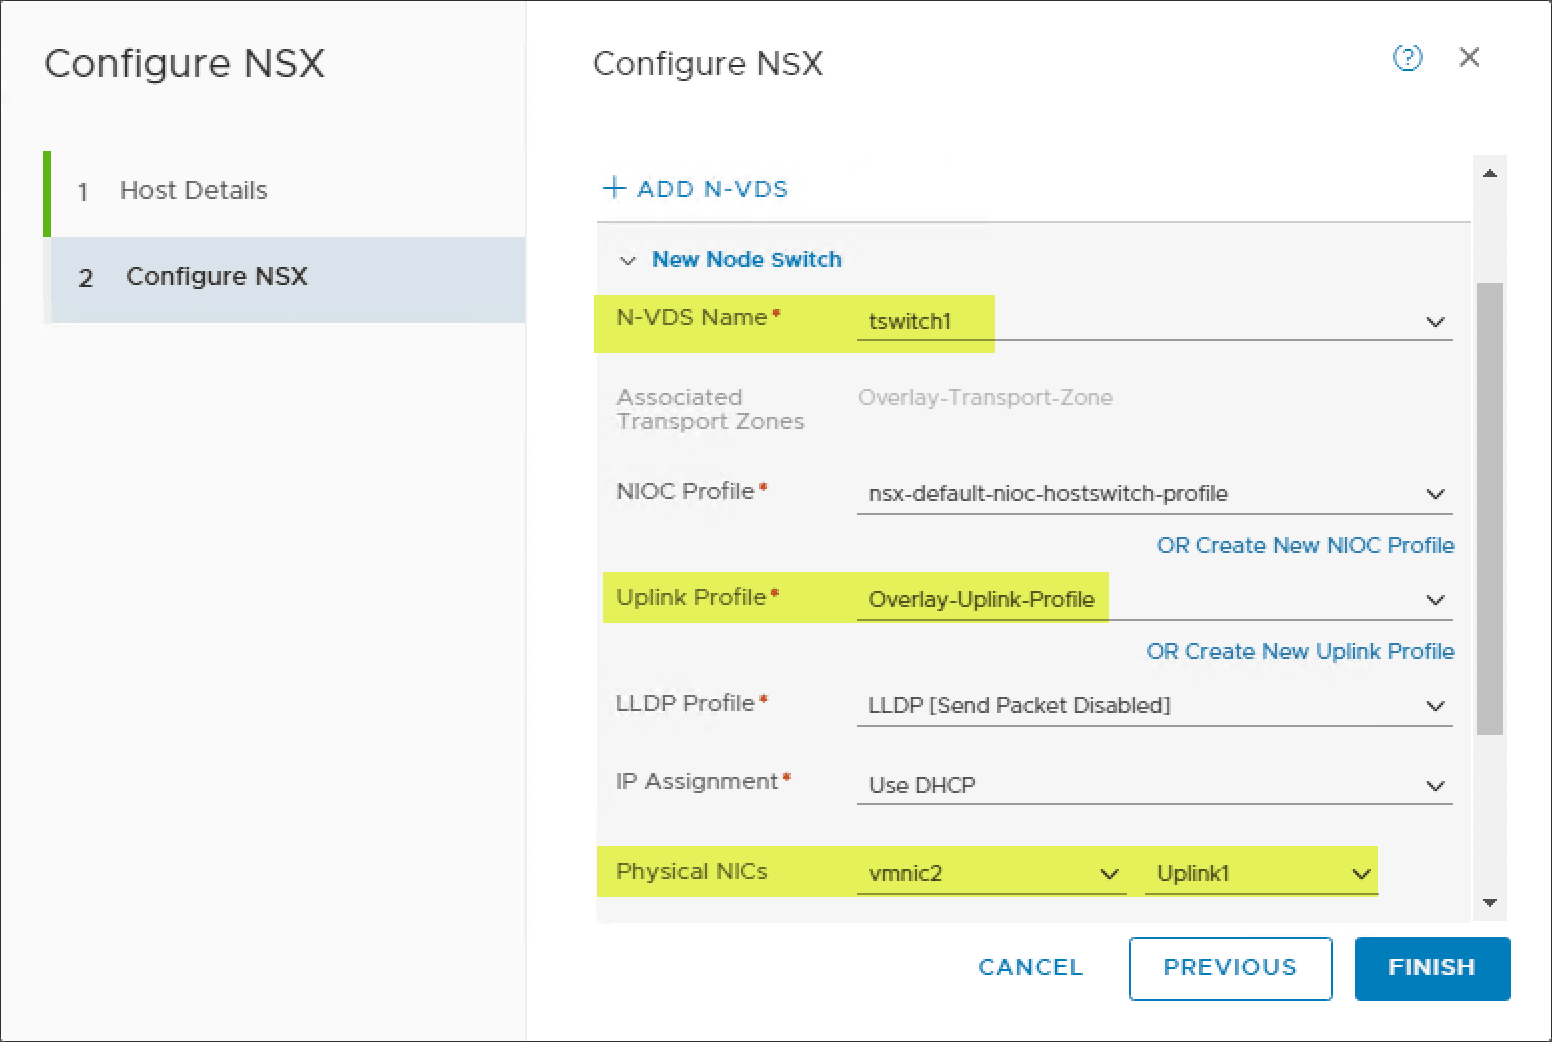 Configure-NSX-screen-to-create-transport-zone-N-VDS-uplink-profile-for-NSX-T How to Manage the NSX-T N-VDS Virtual Switch